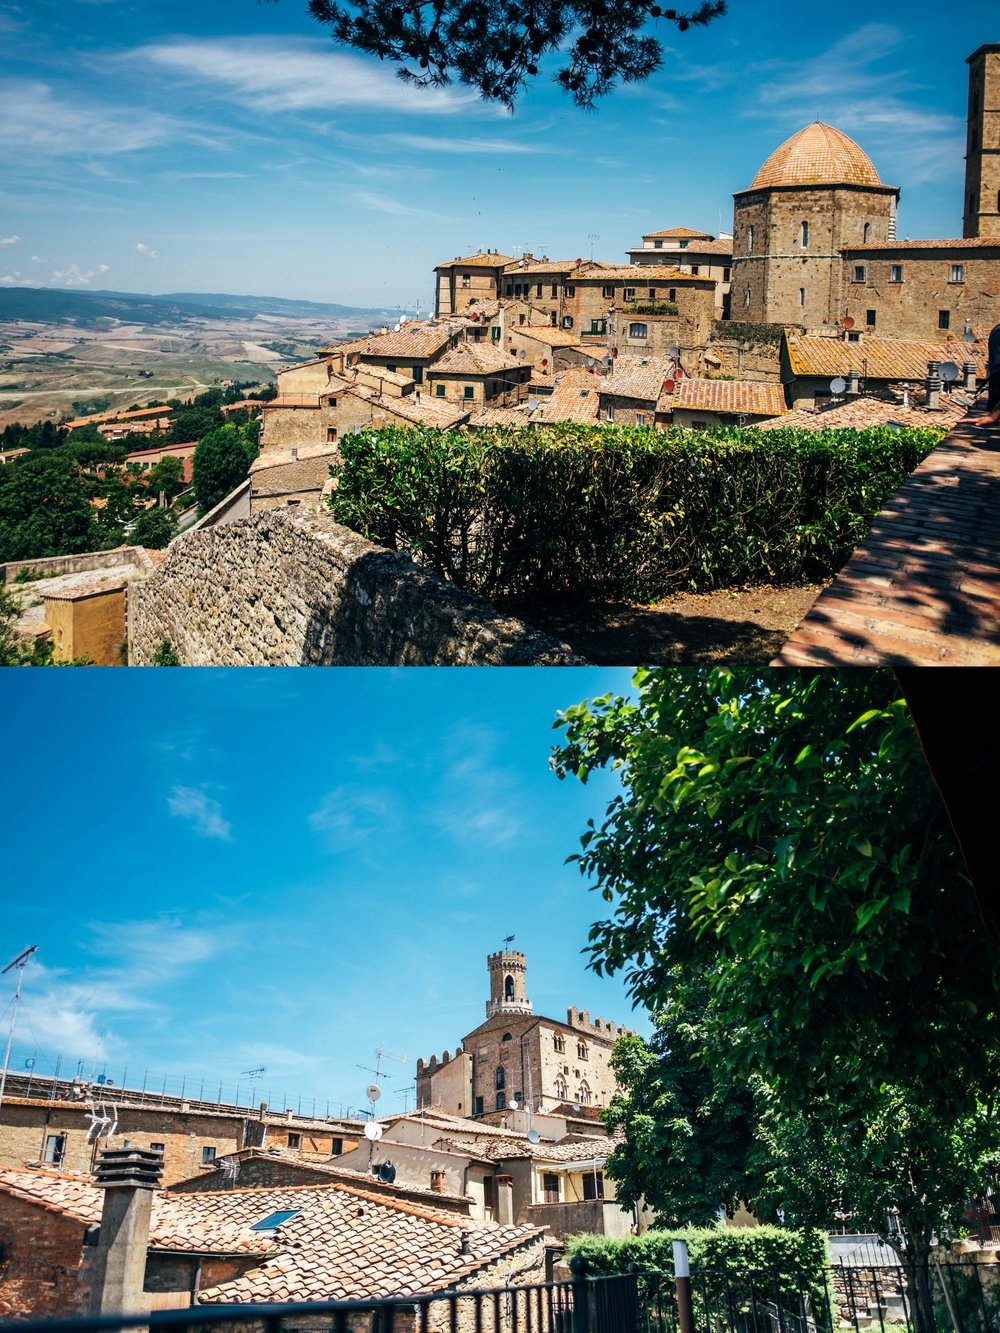 Volterra Rooftops Tuscany Essex Documentary Wedding Travel Photographer